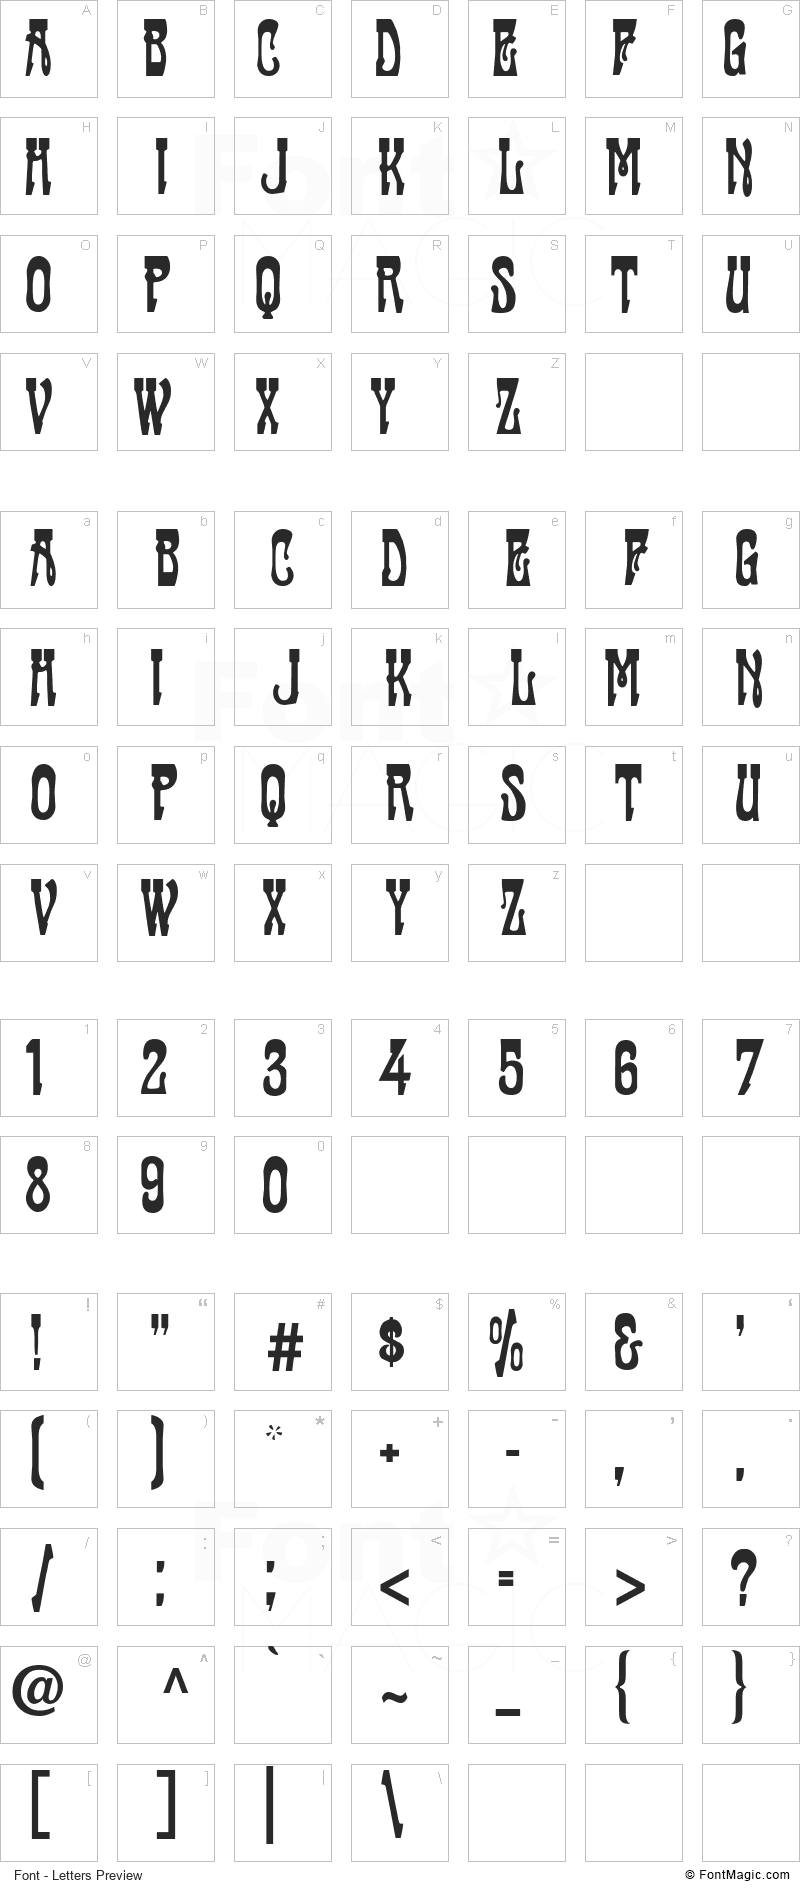 Cabaret Font - All Latters Preview Chart